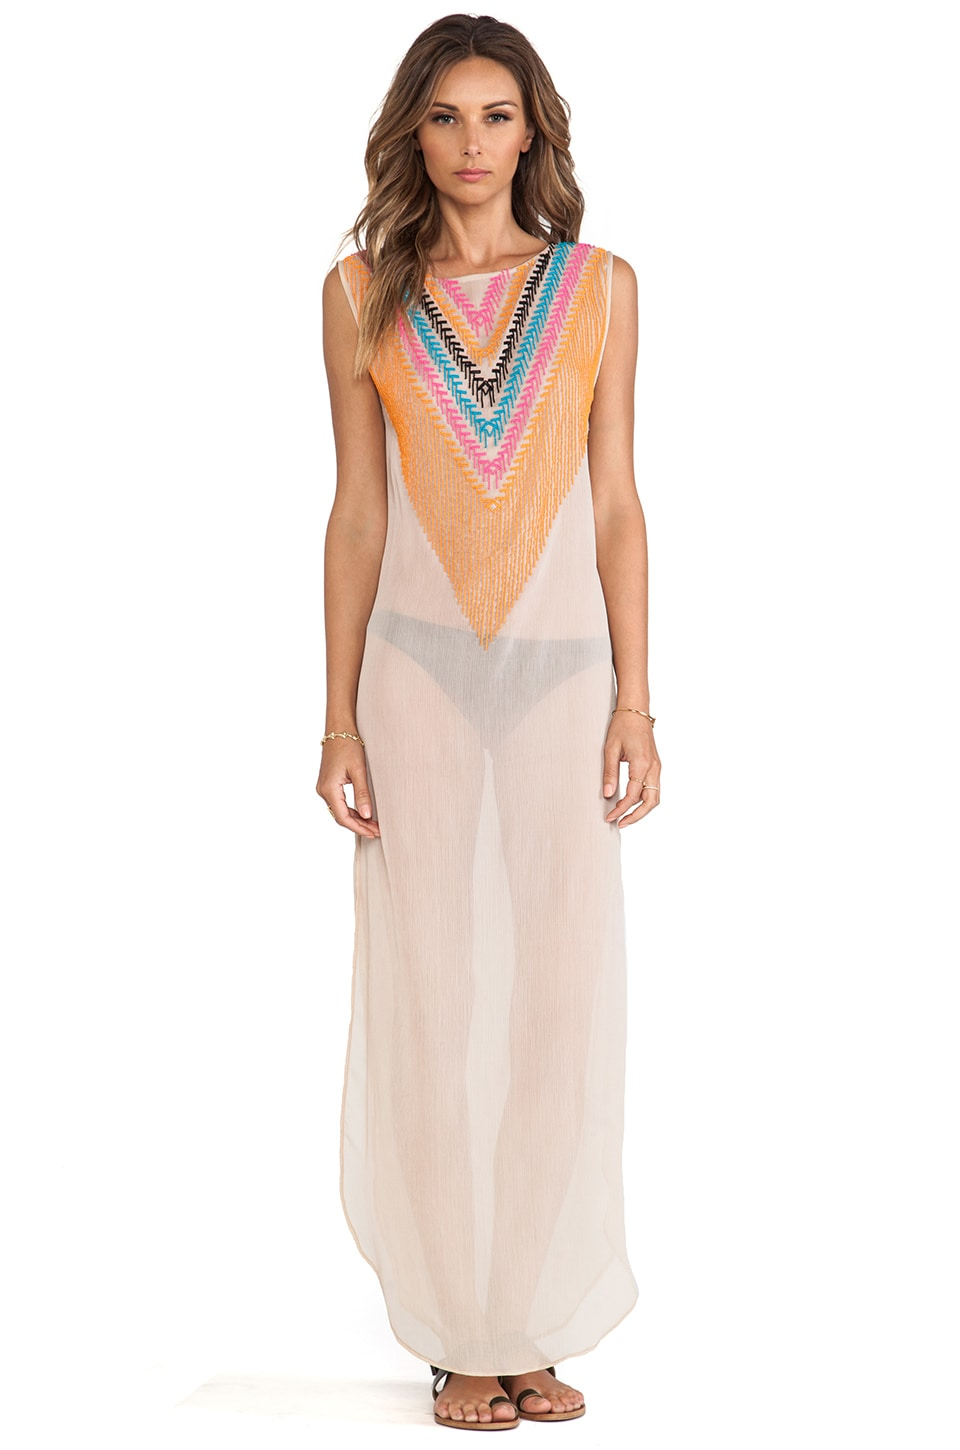 Mara Hoffman Chiffon Beaded Dashiki in Stone